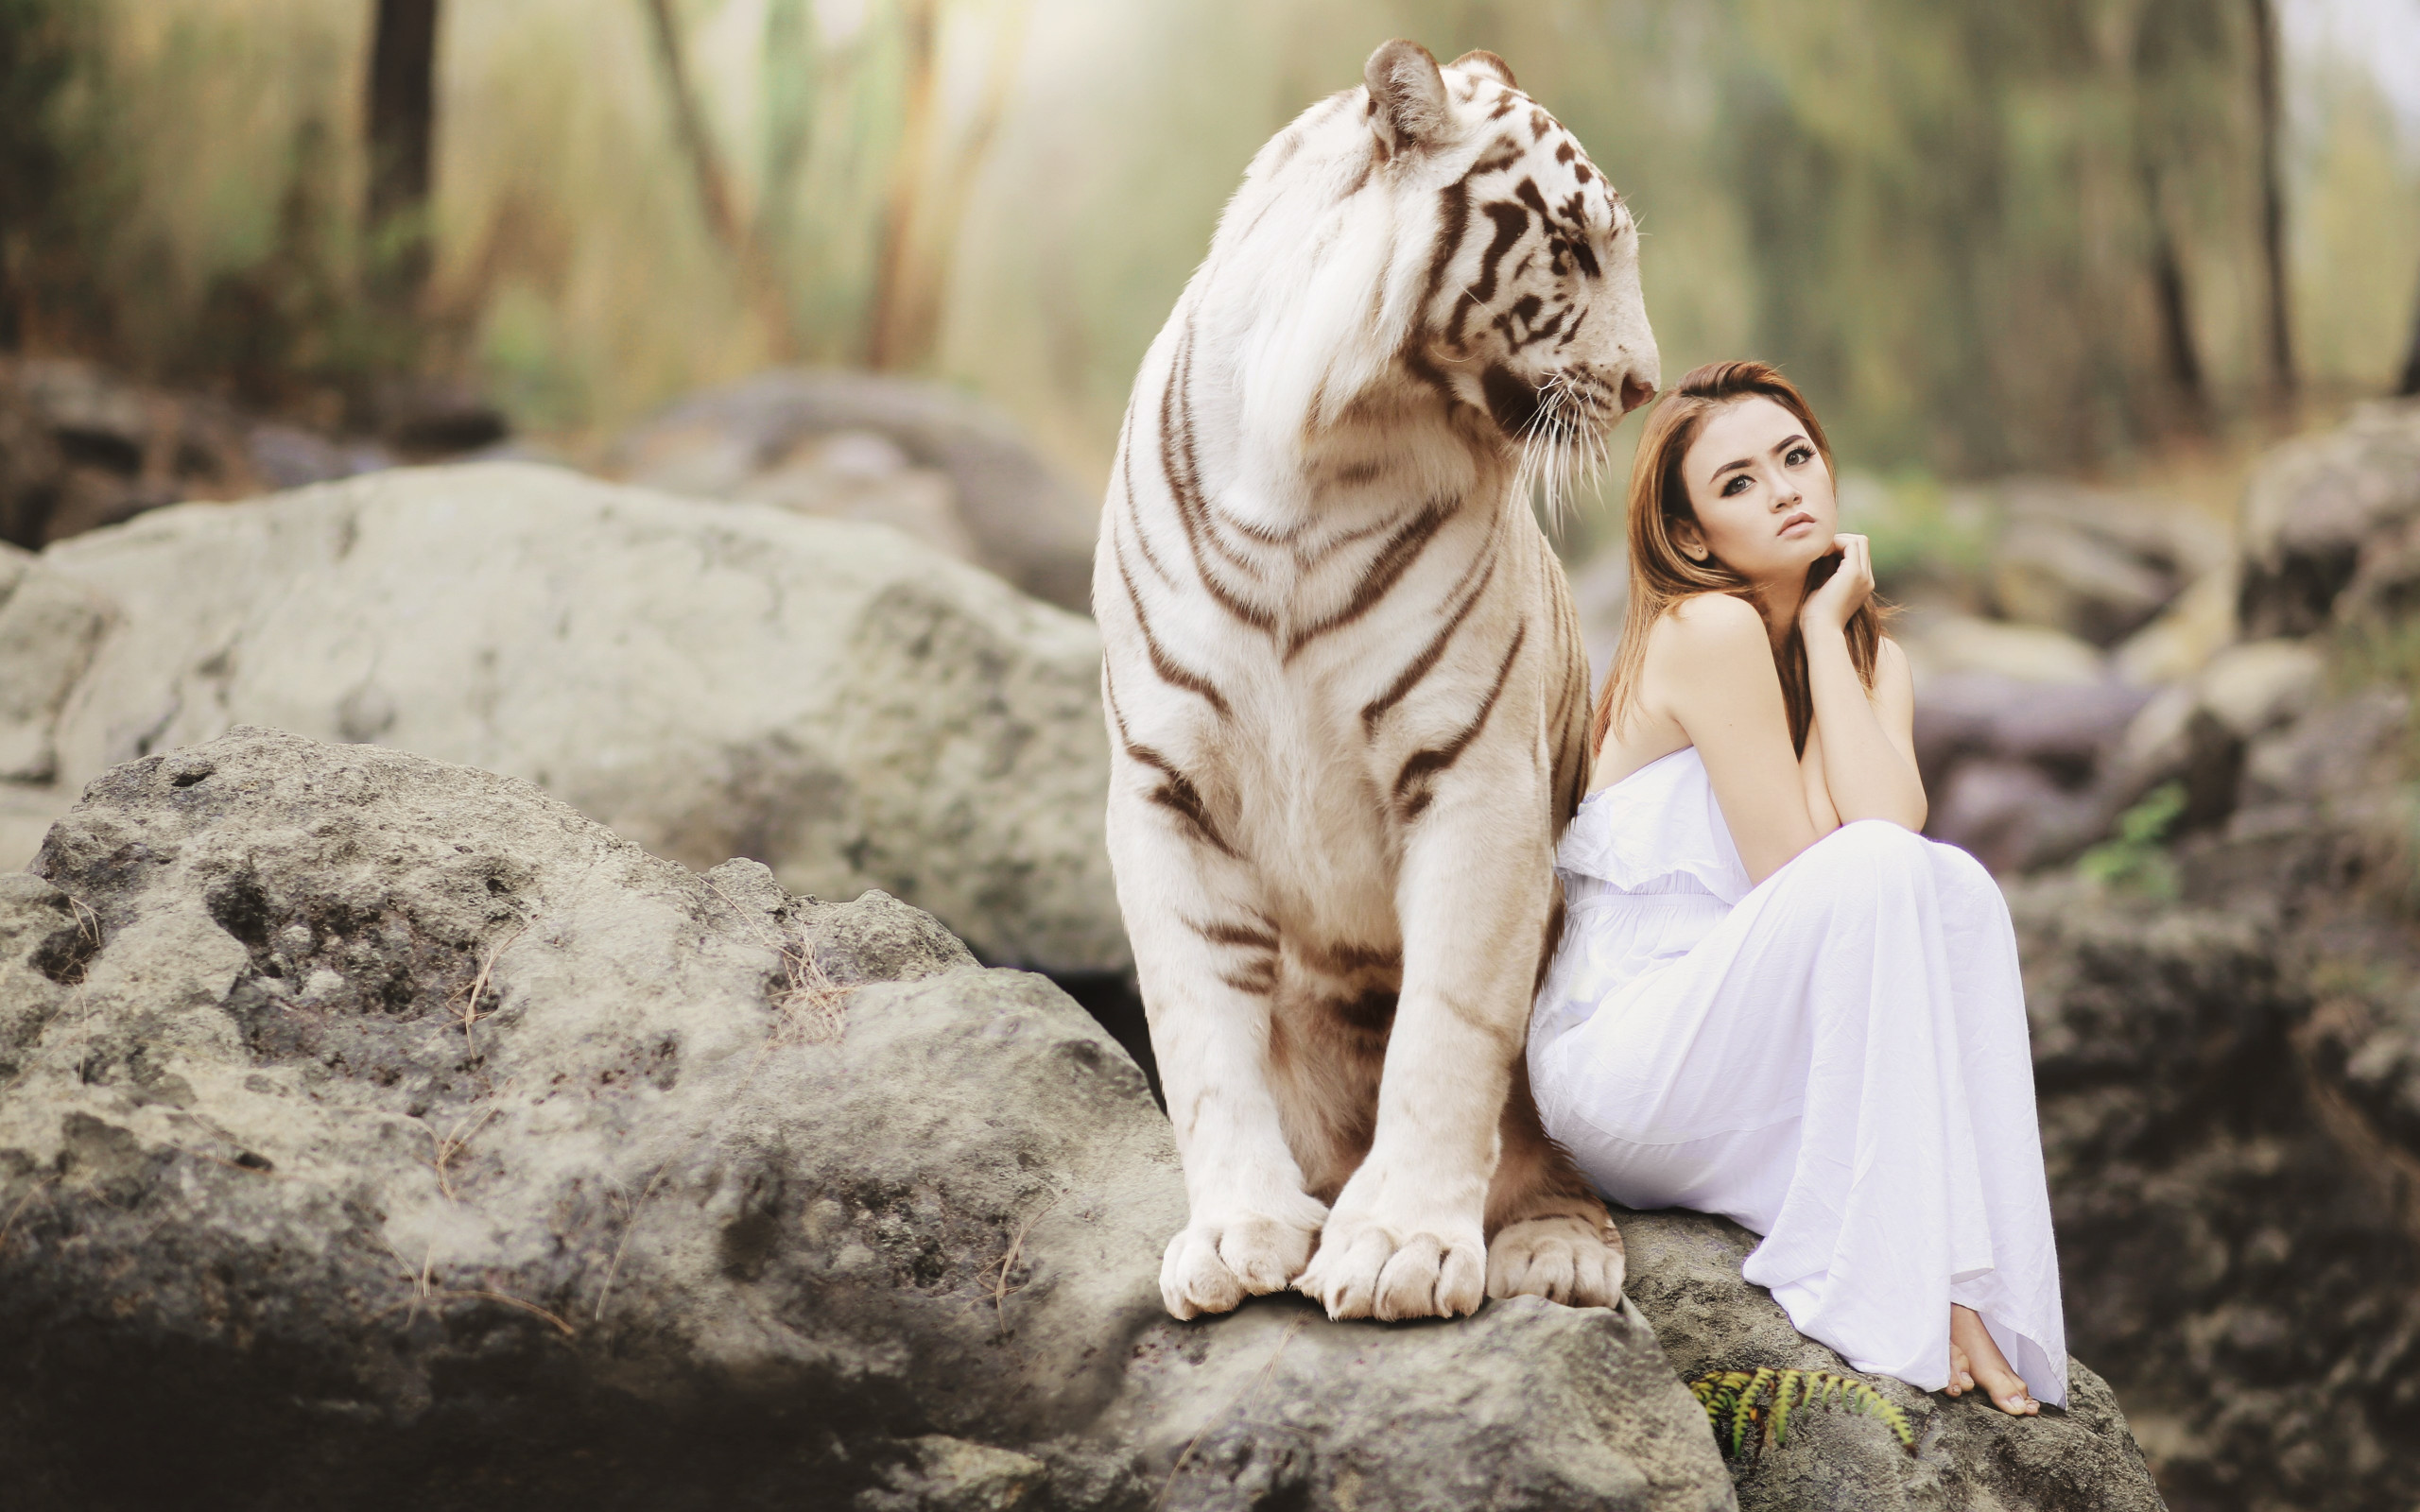 Bengal tiger and a beautiful girl | 2560x1600 wallpaper